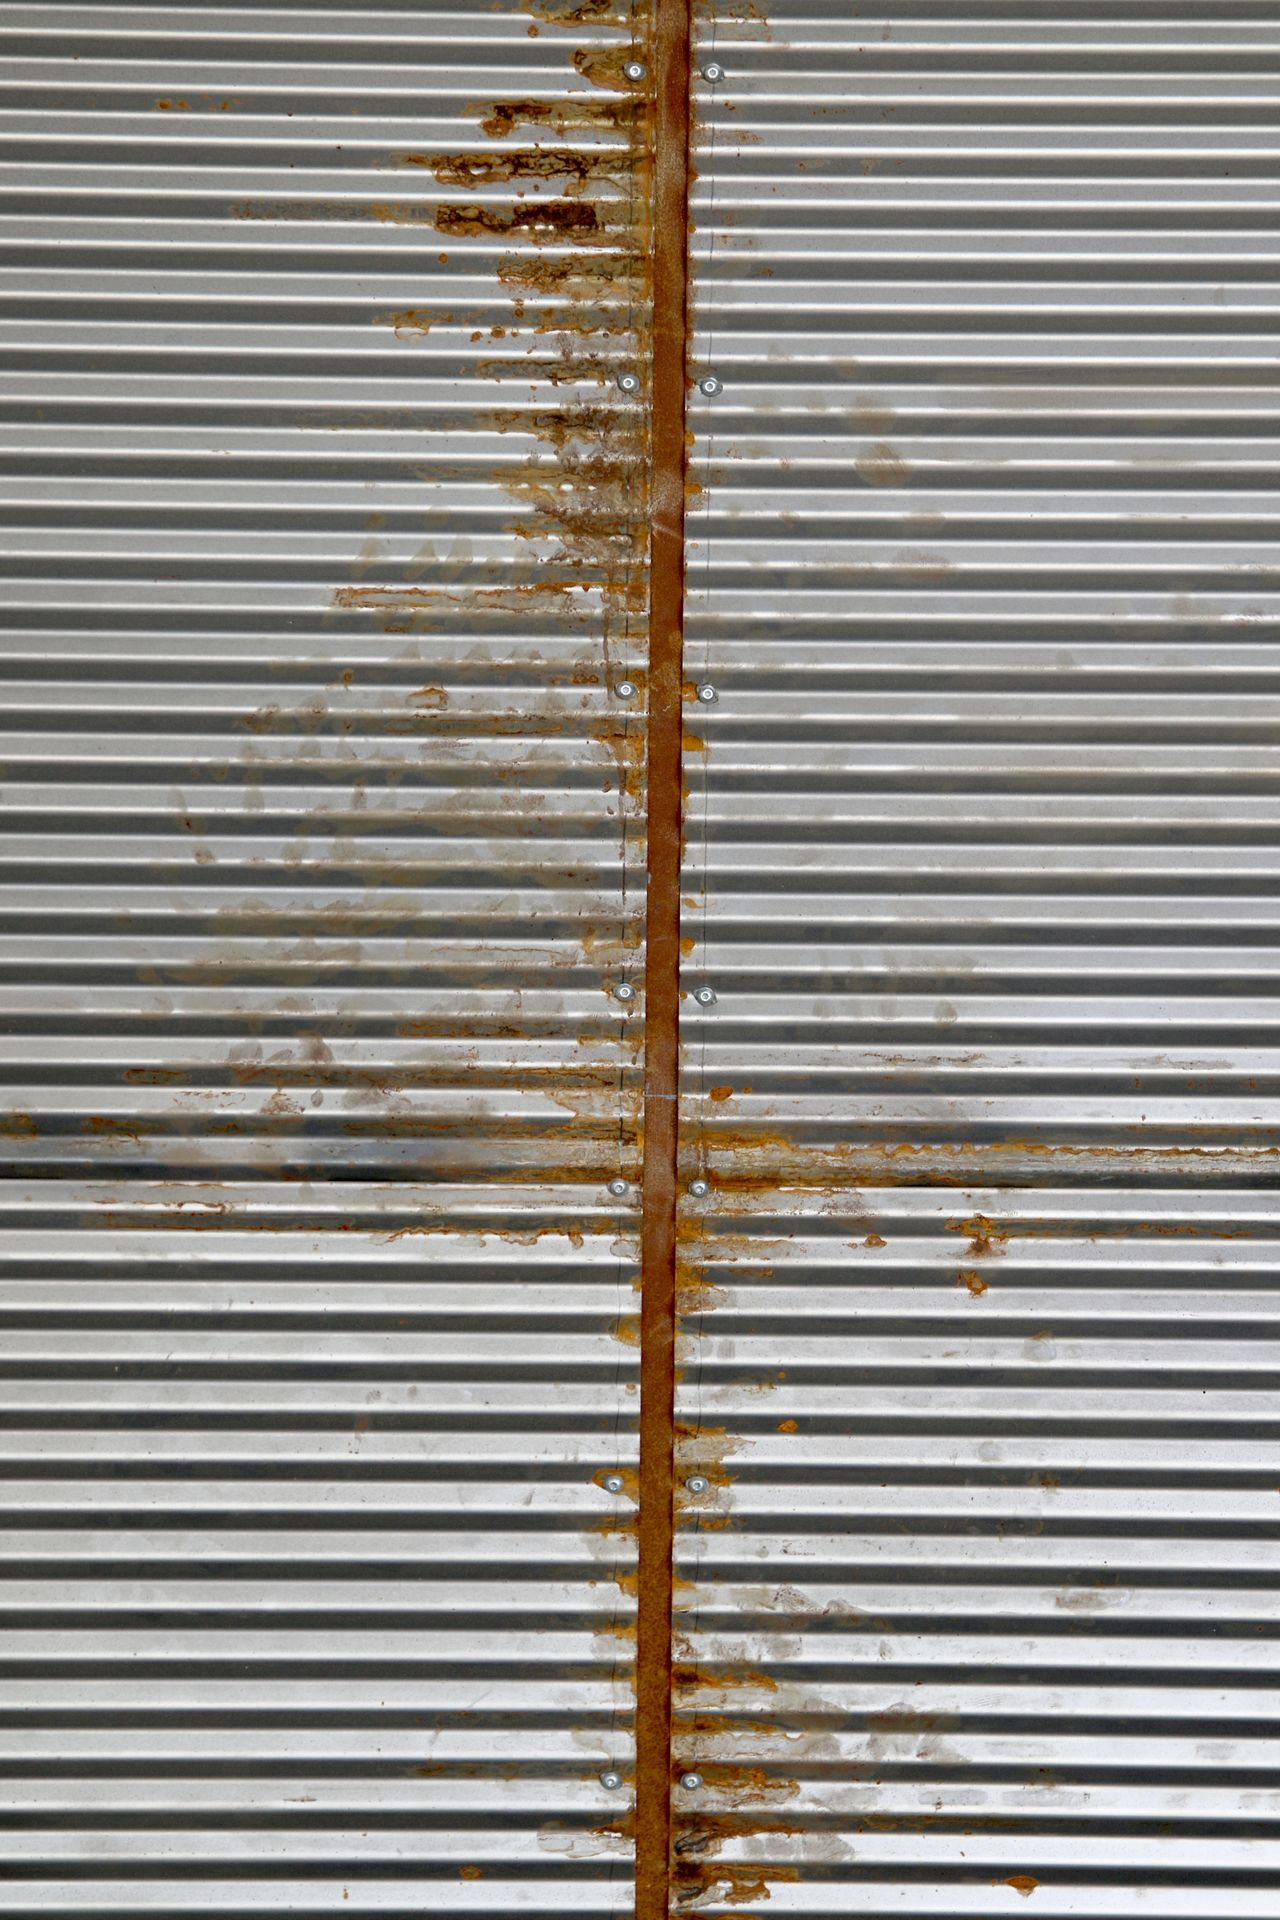 Architecture Backgrounds Closed Corrugated Iron Metal No People Outdoors Pattern Rusty Shutter Steel